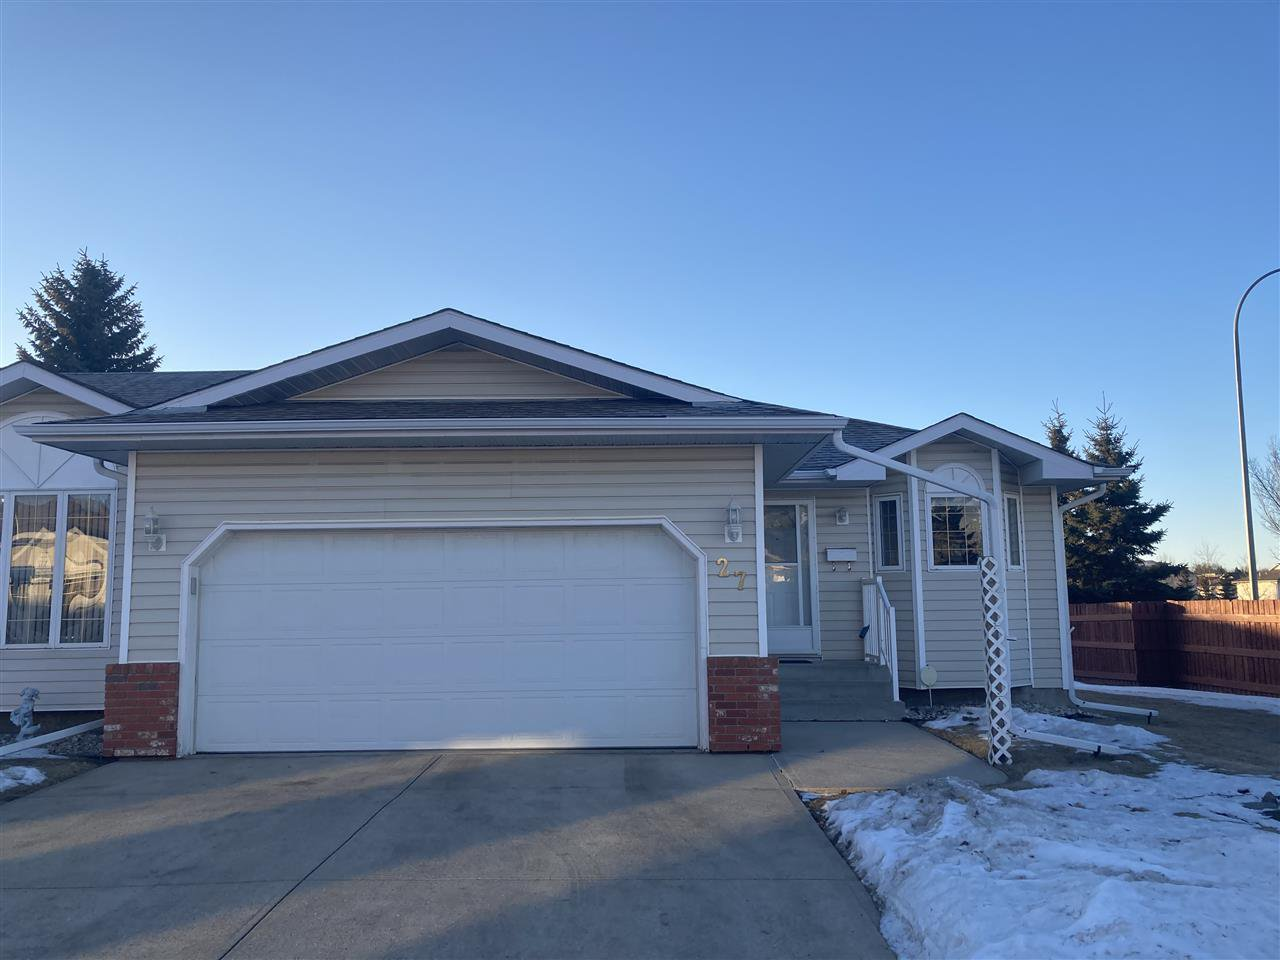 Main Photo: 27 7 Cranford Way: Sherwood Park Townhouse for sale : MLS®# E4224288